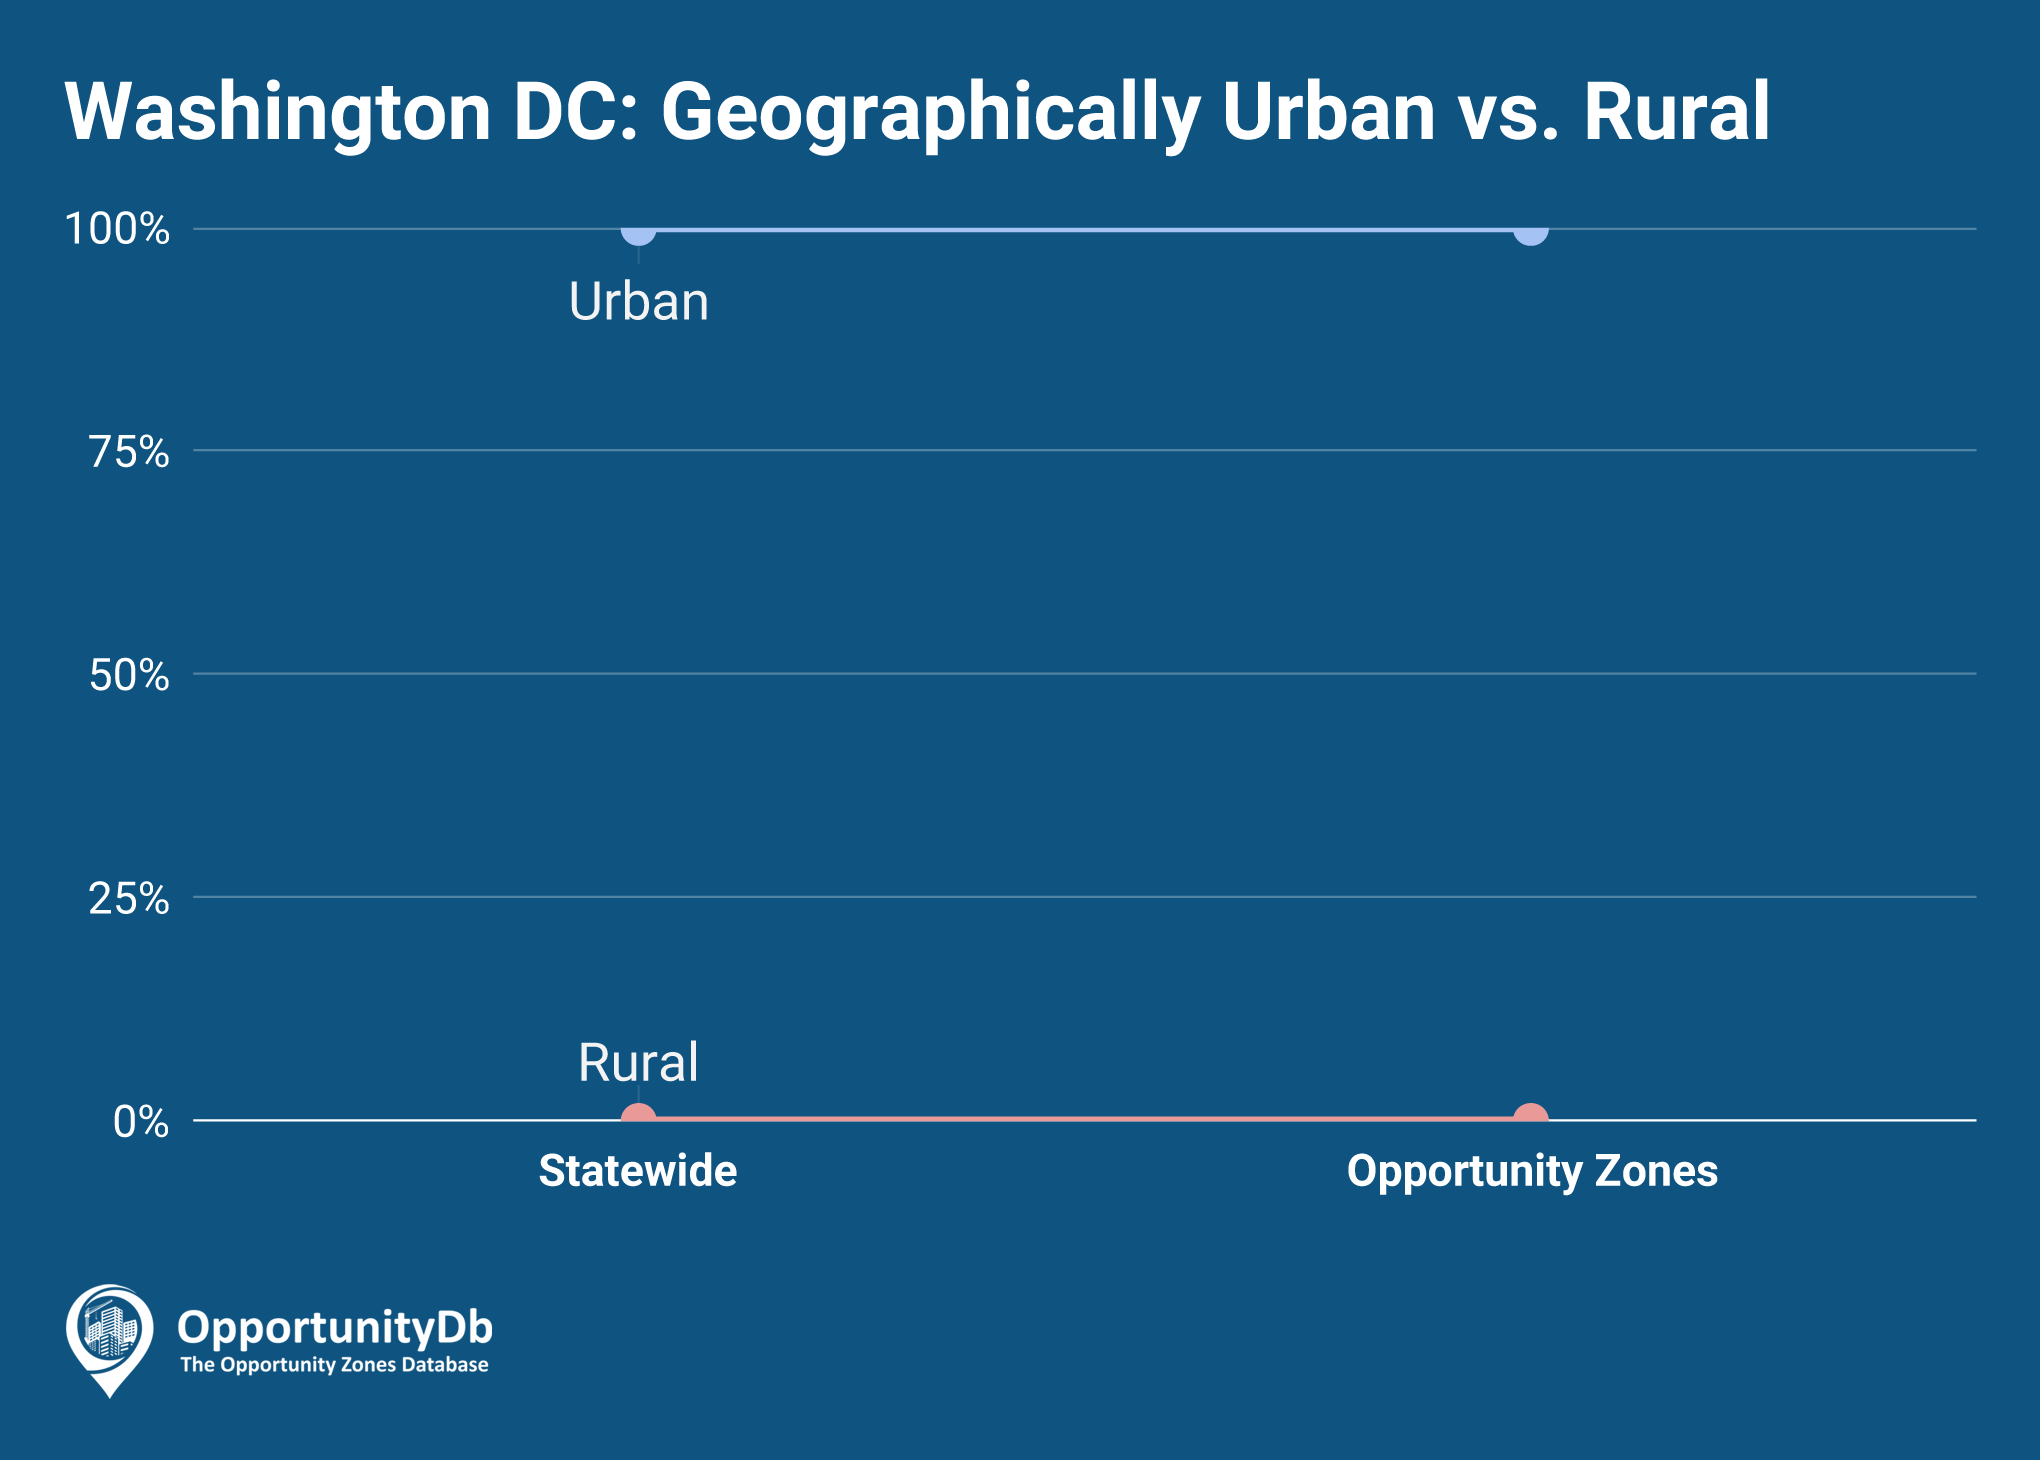 Urban vs. Rural in Washington DC Opportunity Zones